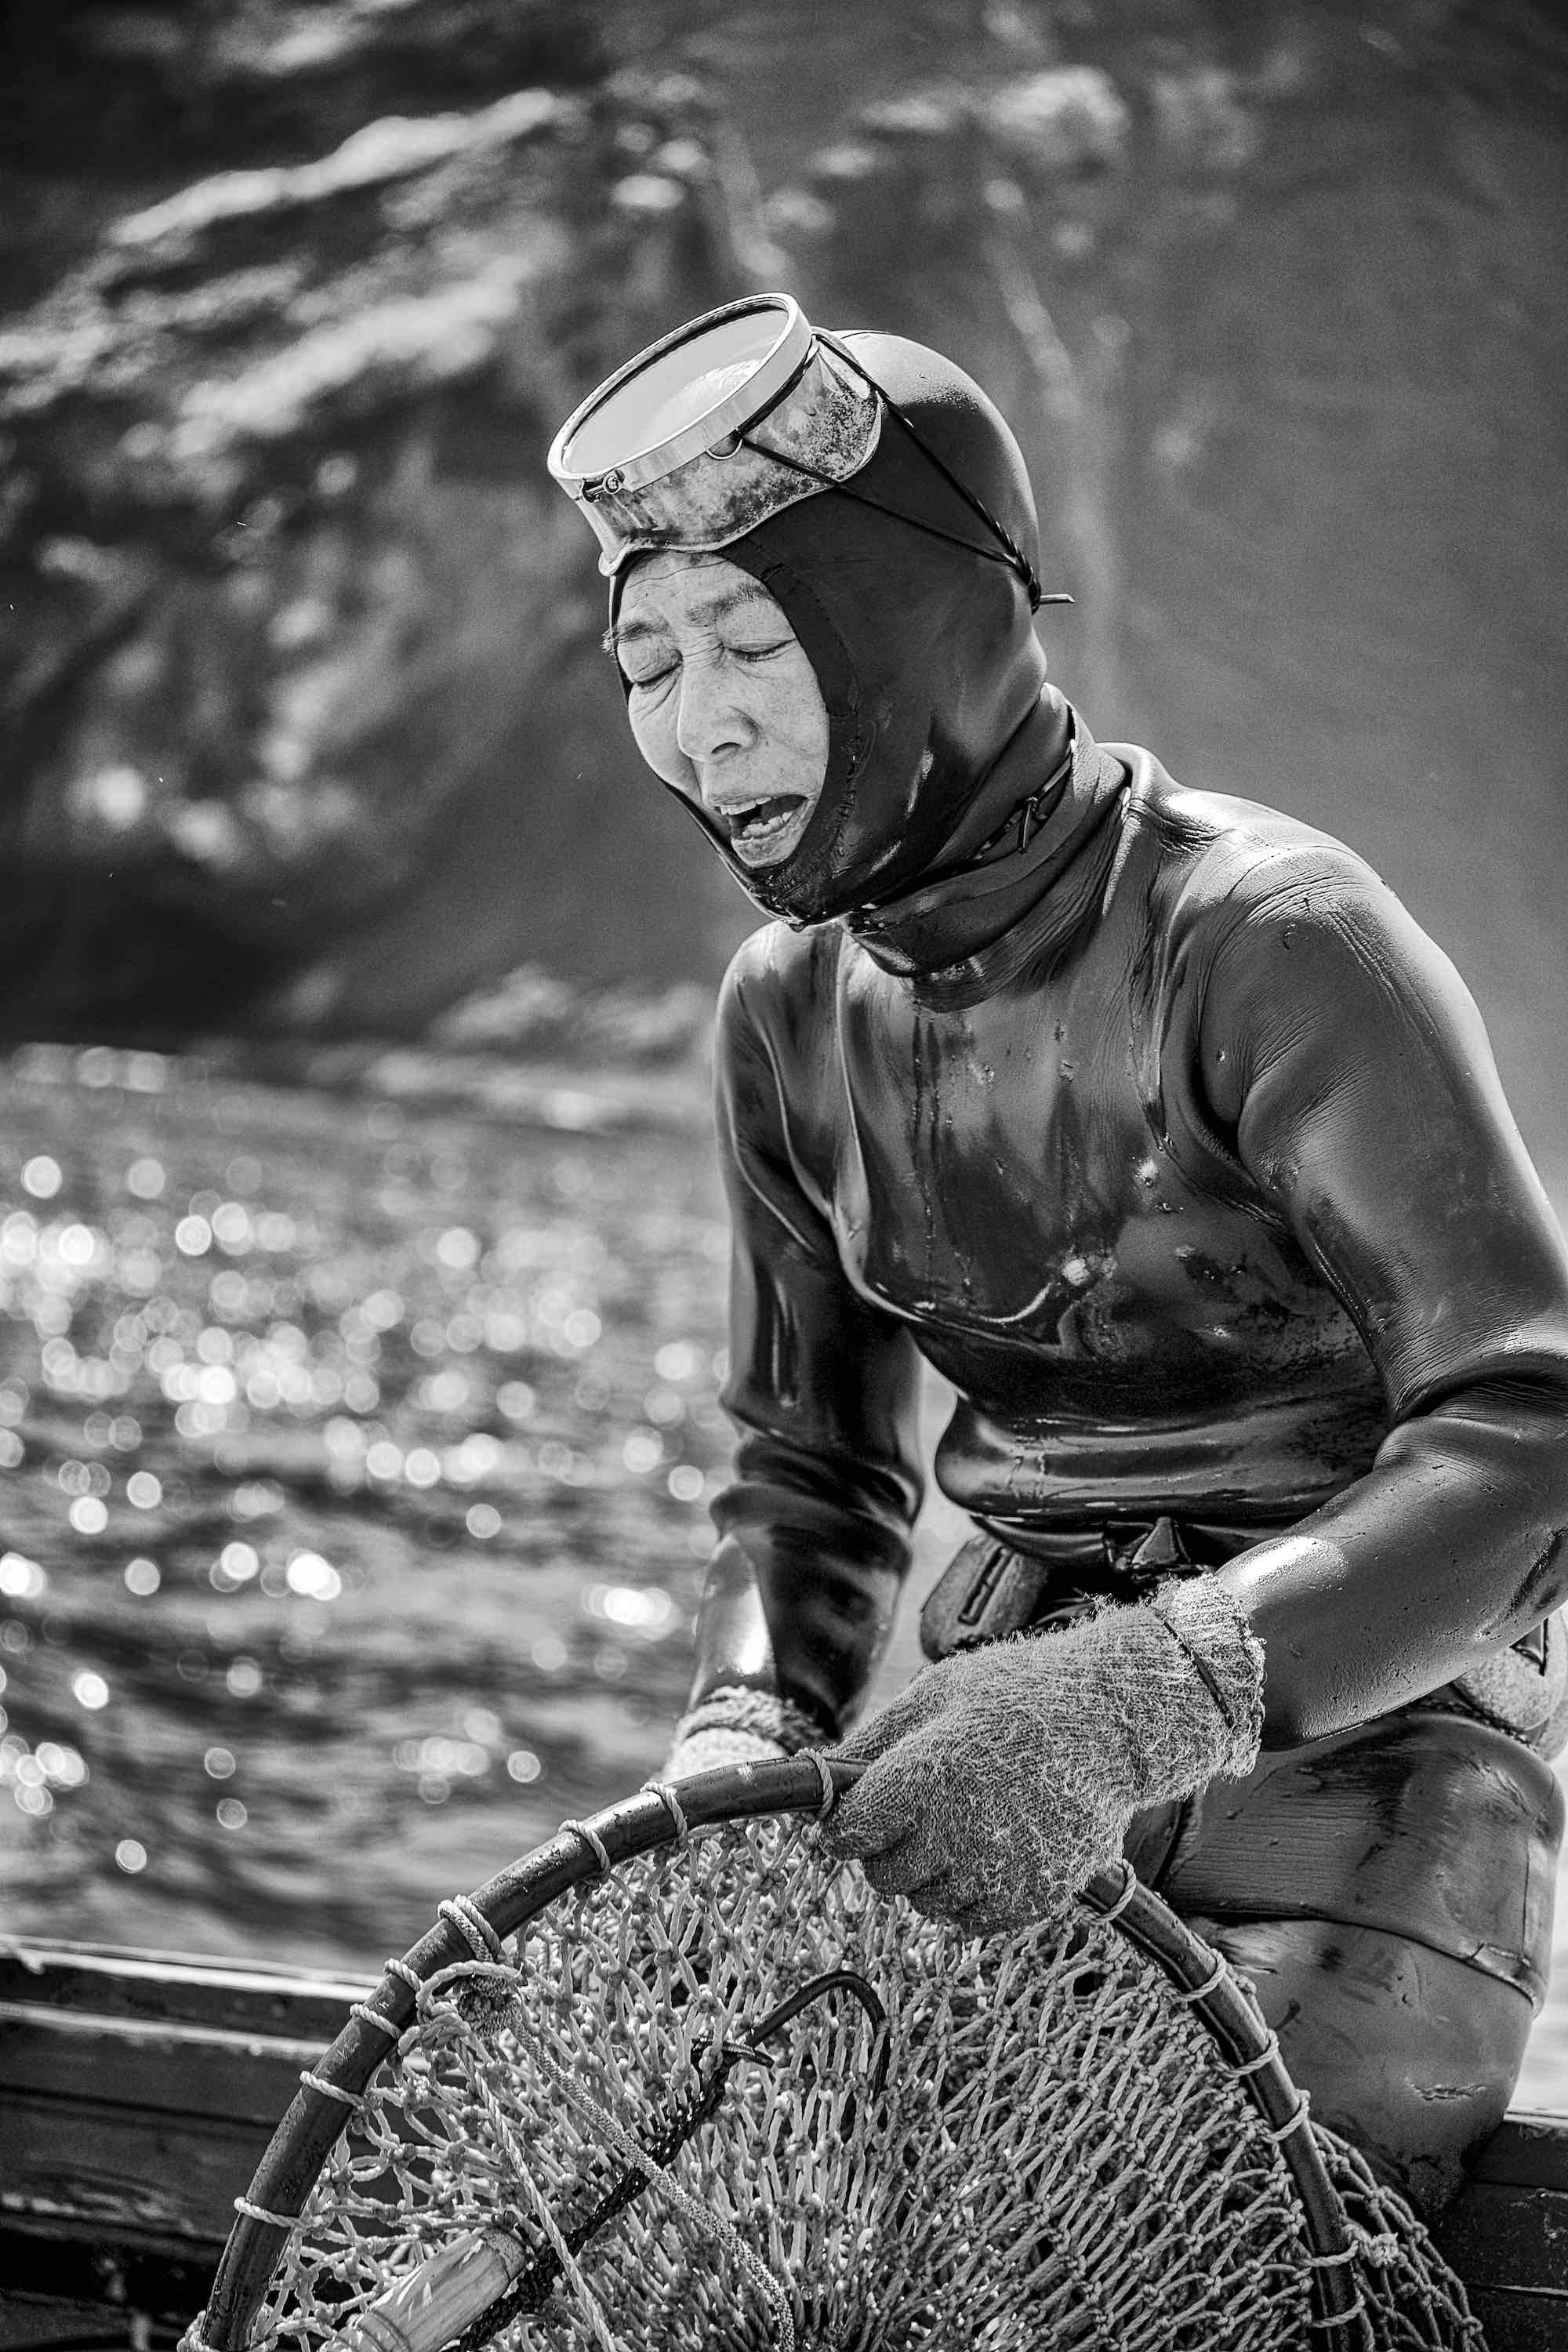 haenyeo women divers jeju island south korea mermaid of the sea photography photo photograph ocean dive sea food photographer video underwater haenyo 해녀